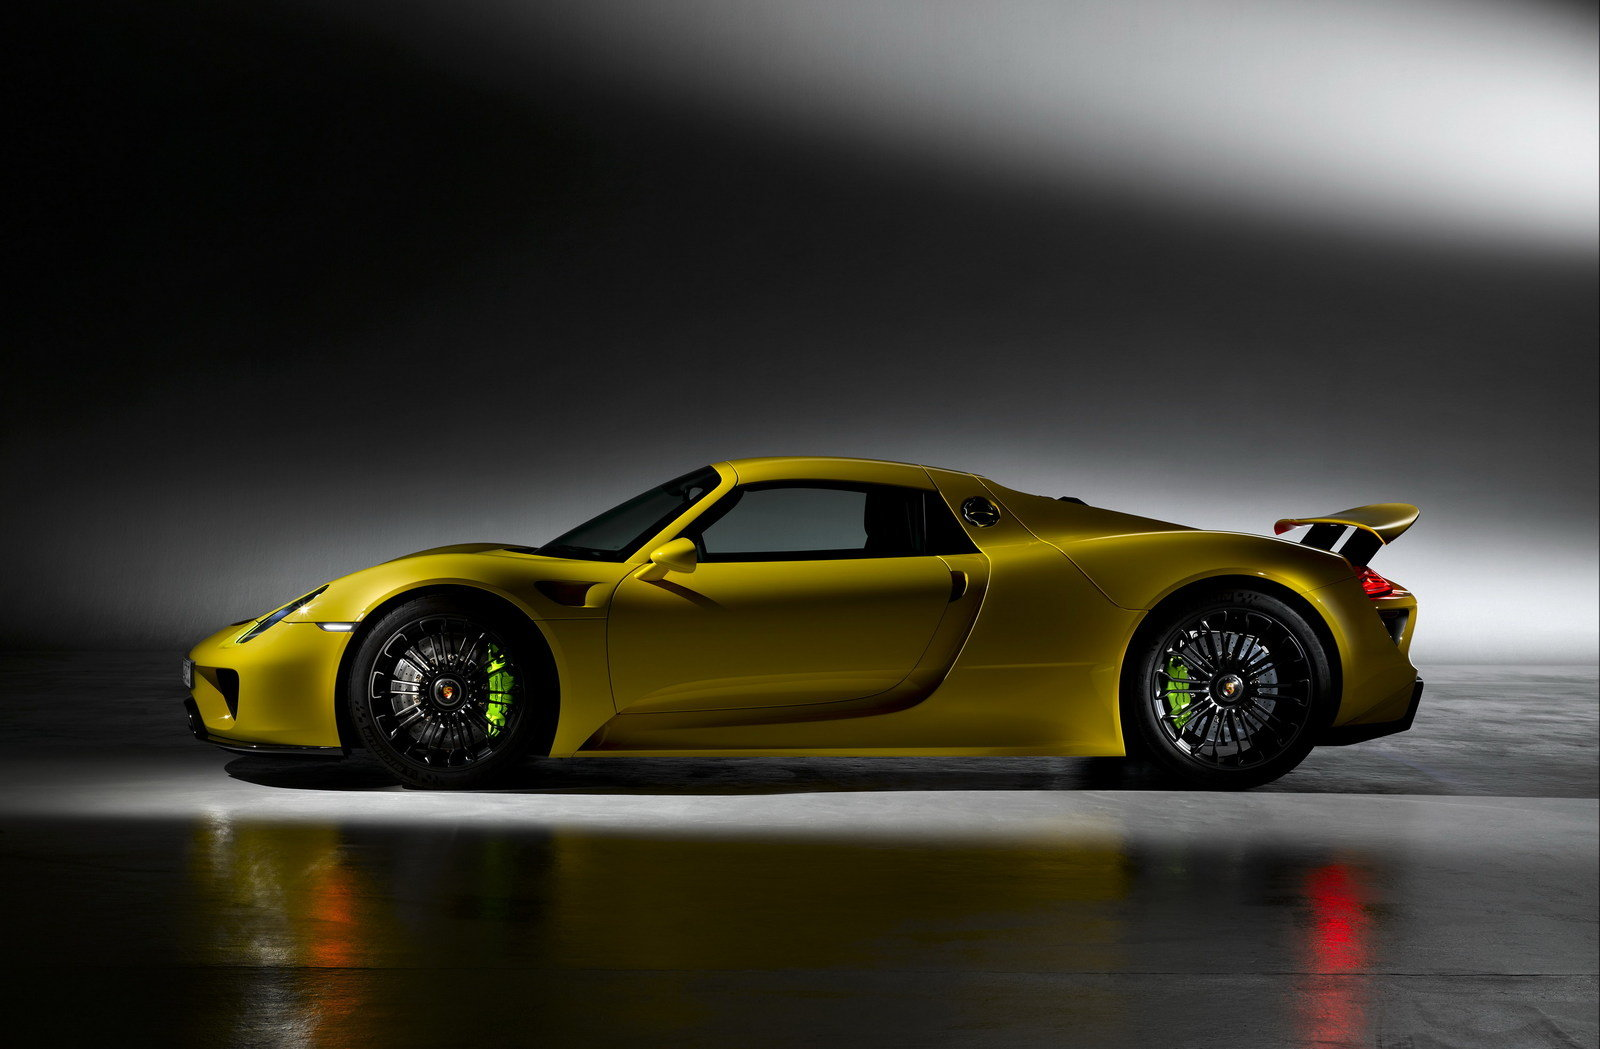 2014 porsche 918 spyder picture 535840 car review top speed. Black Bedroom Furniture Sets. Home Design Ideas